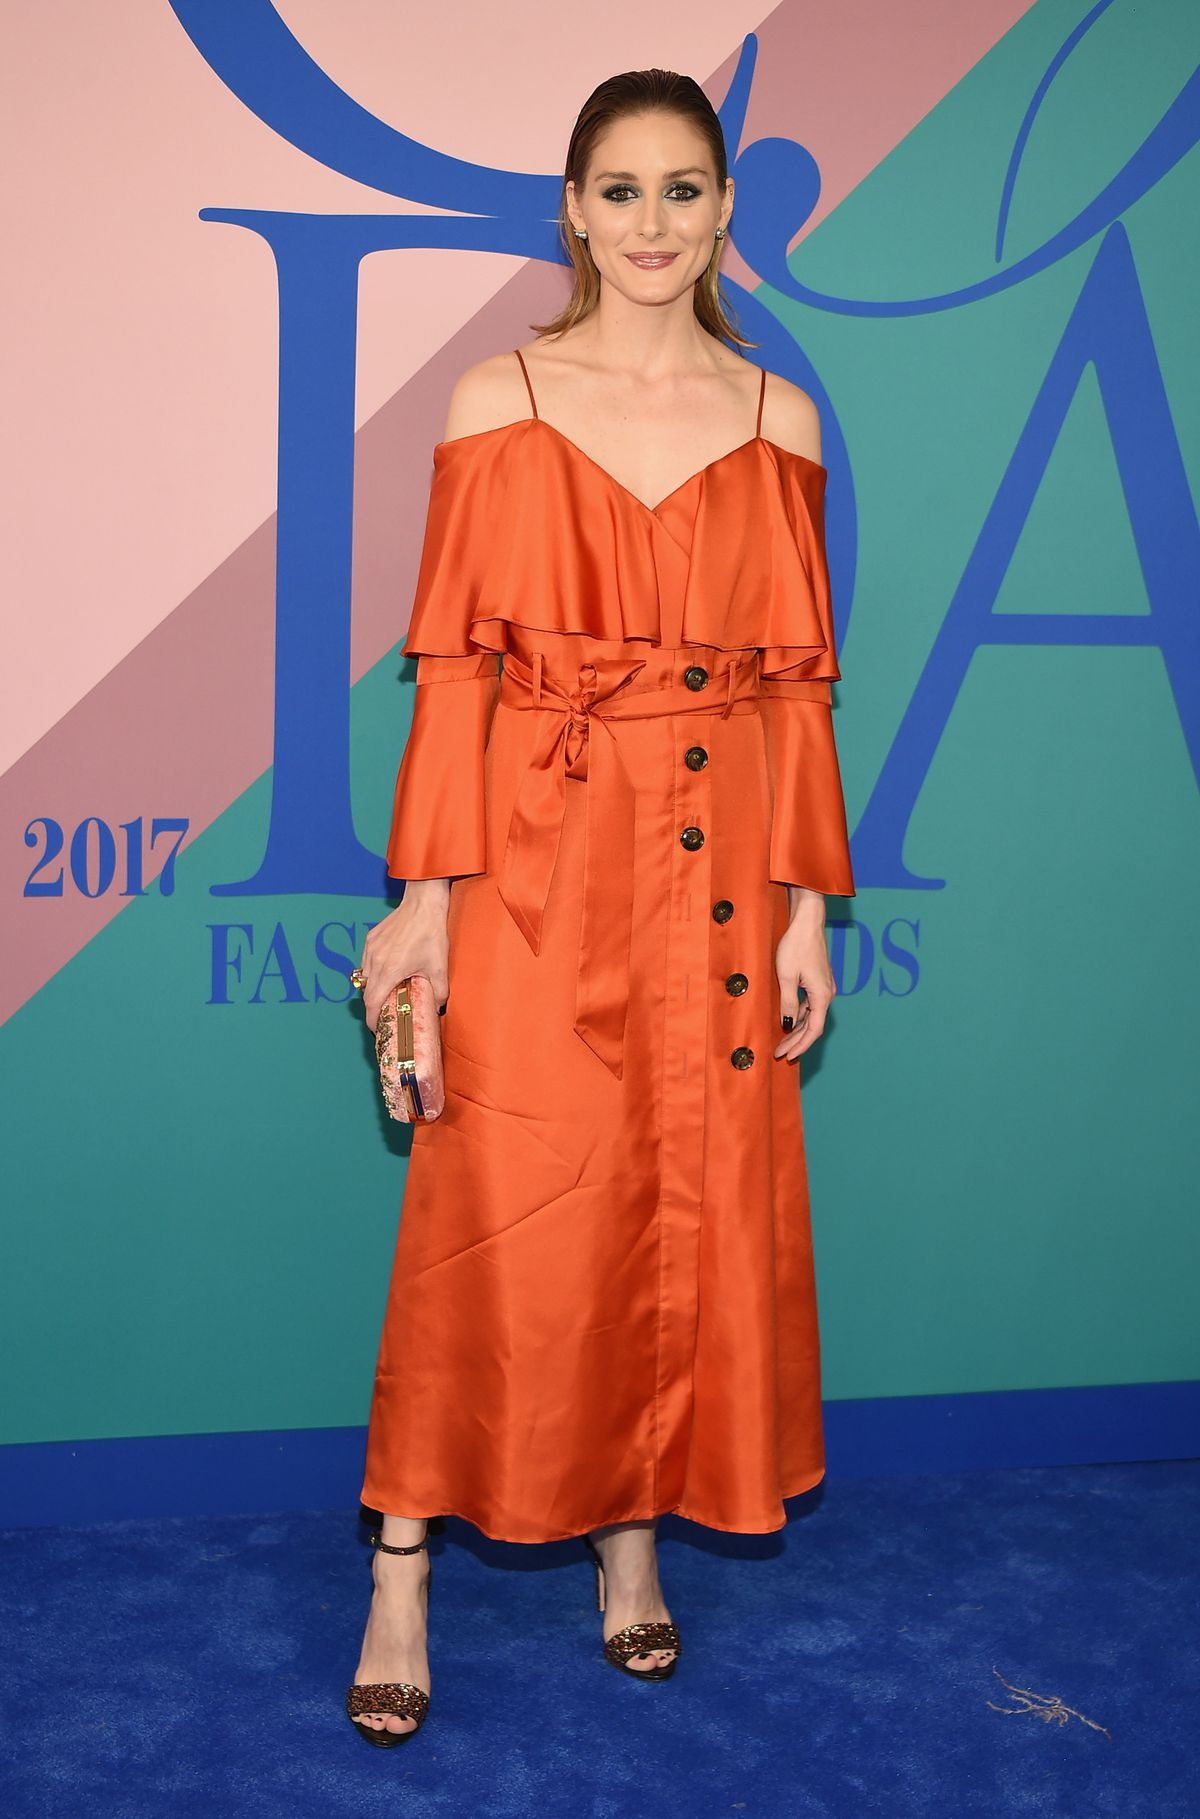 Olivia Palermo attends the 2017 CFDA Fashion Awards at Hammerstein Ballroom on June 5, 2017 in New York City.